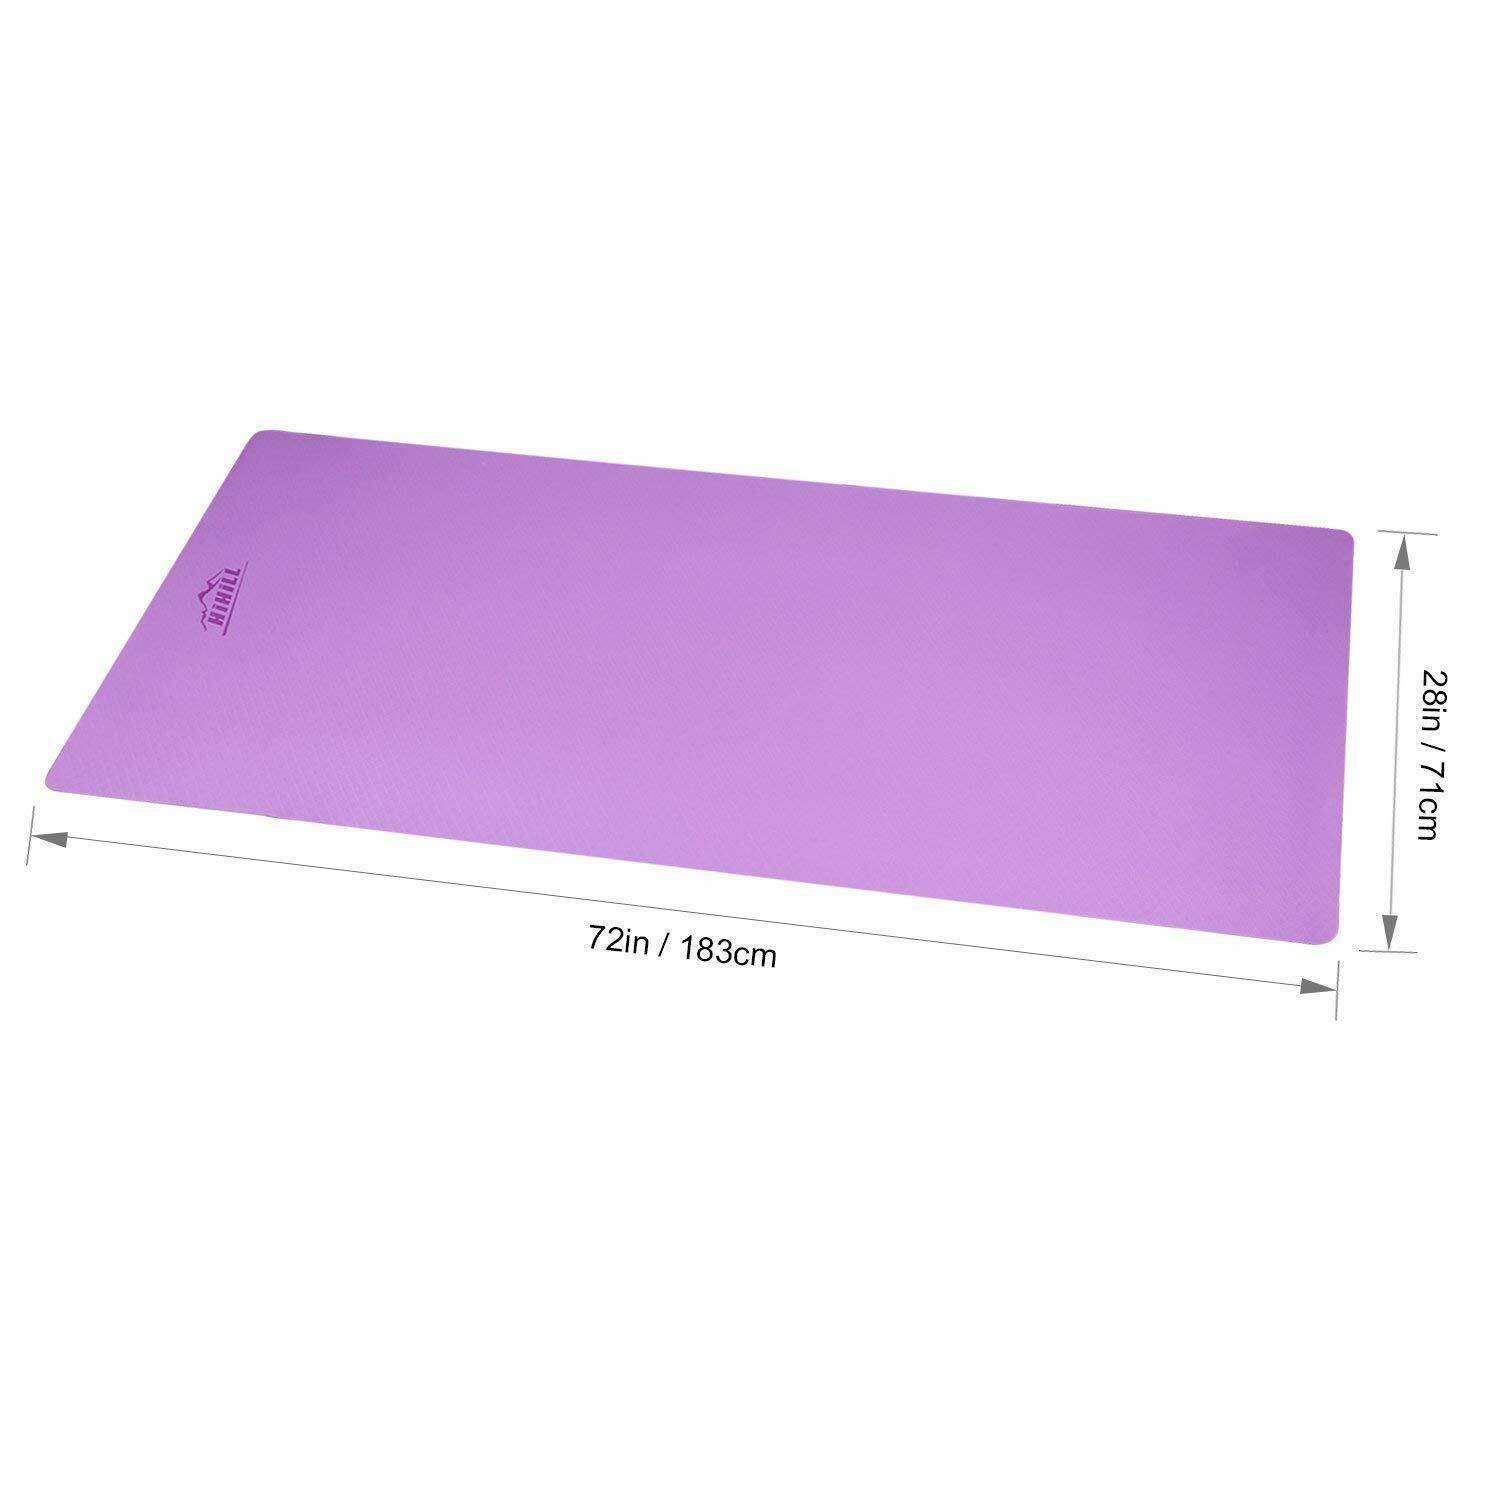 HiHill Yoga Mat, -TPE Non Slip, High Density, with Carry Bag (YG-M1, Purple) 3